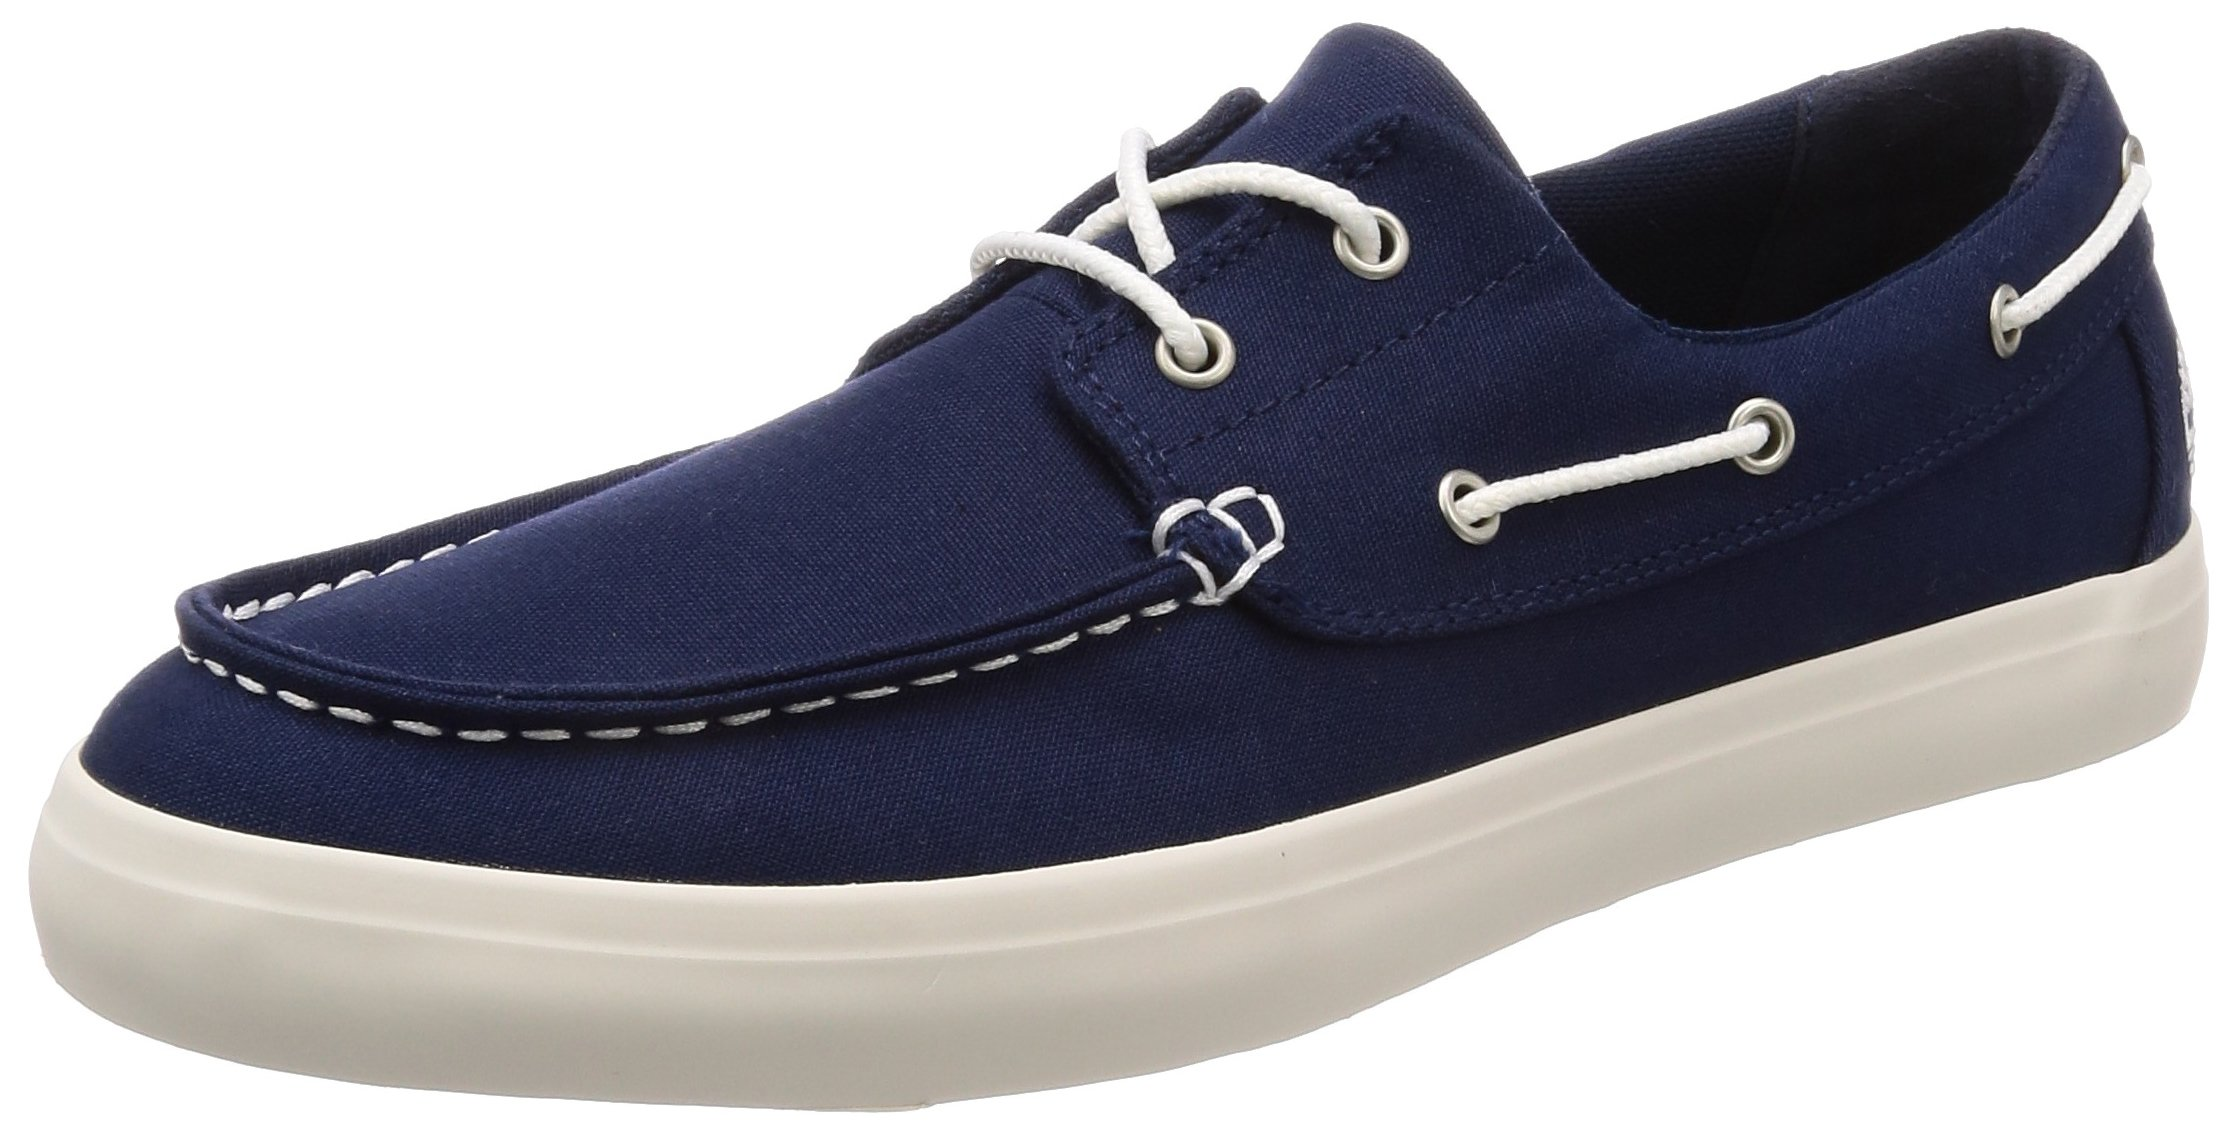 Timberland Men's Newport Bay Oxford Boat Shoes, Blue, 10.5 US